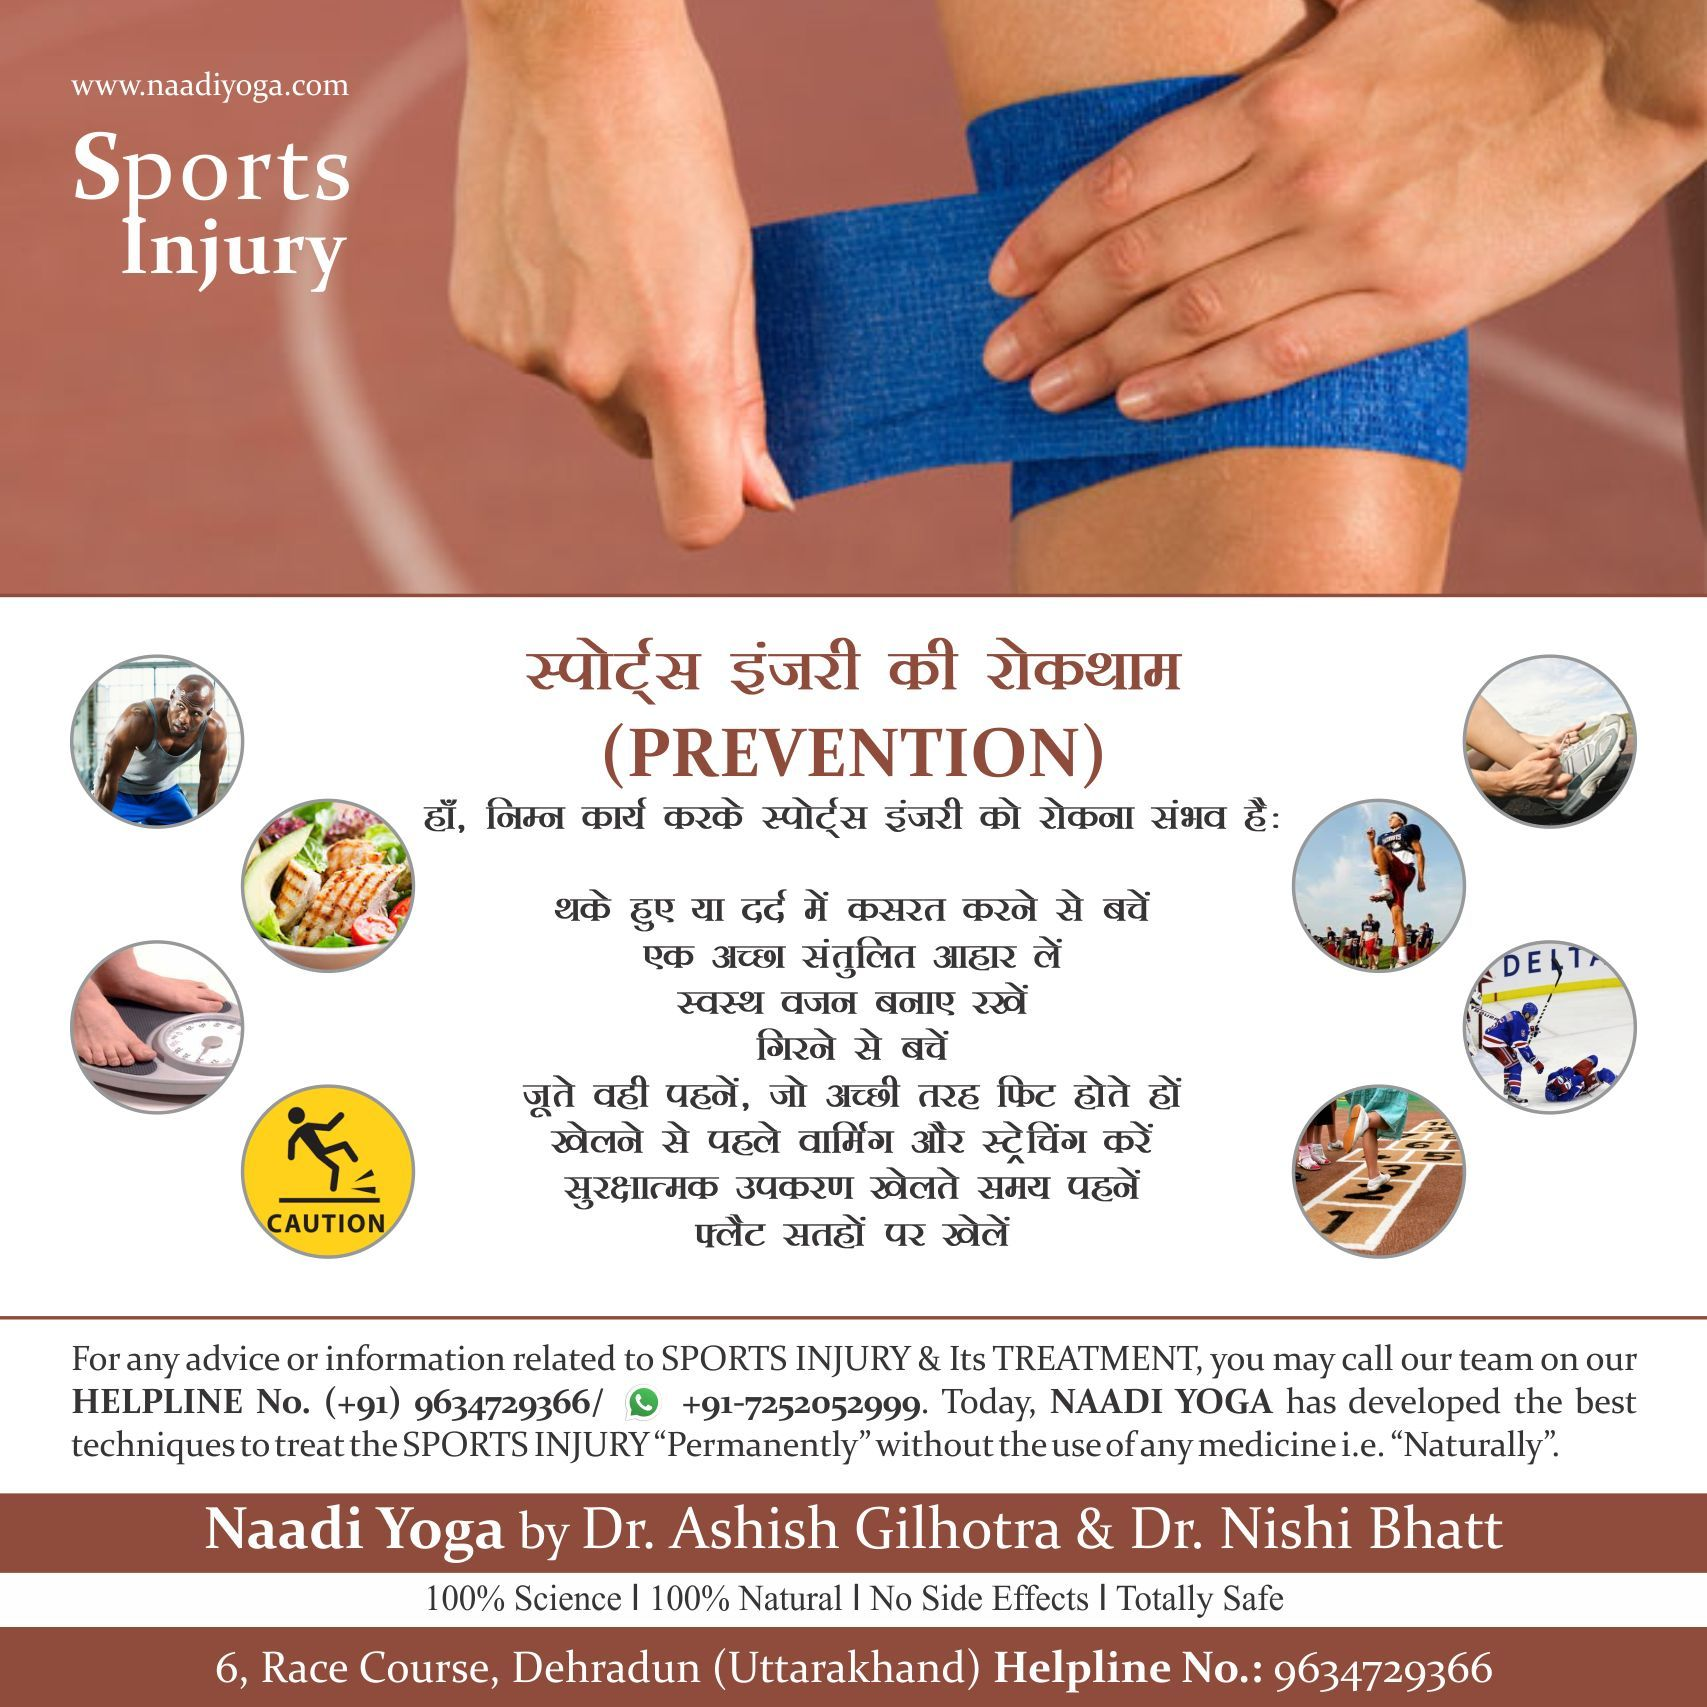 SPORTS INJURY...PREVENTION There are some important injury